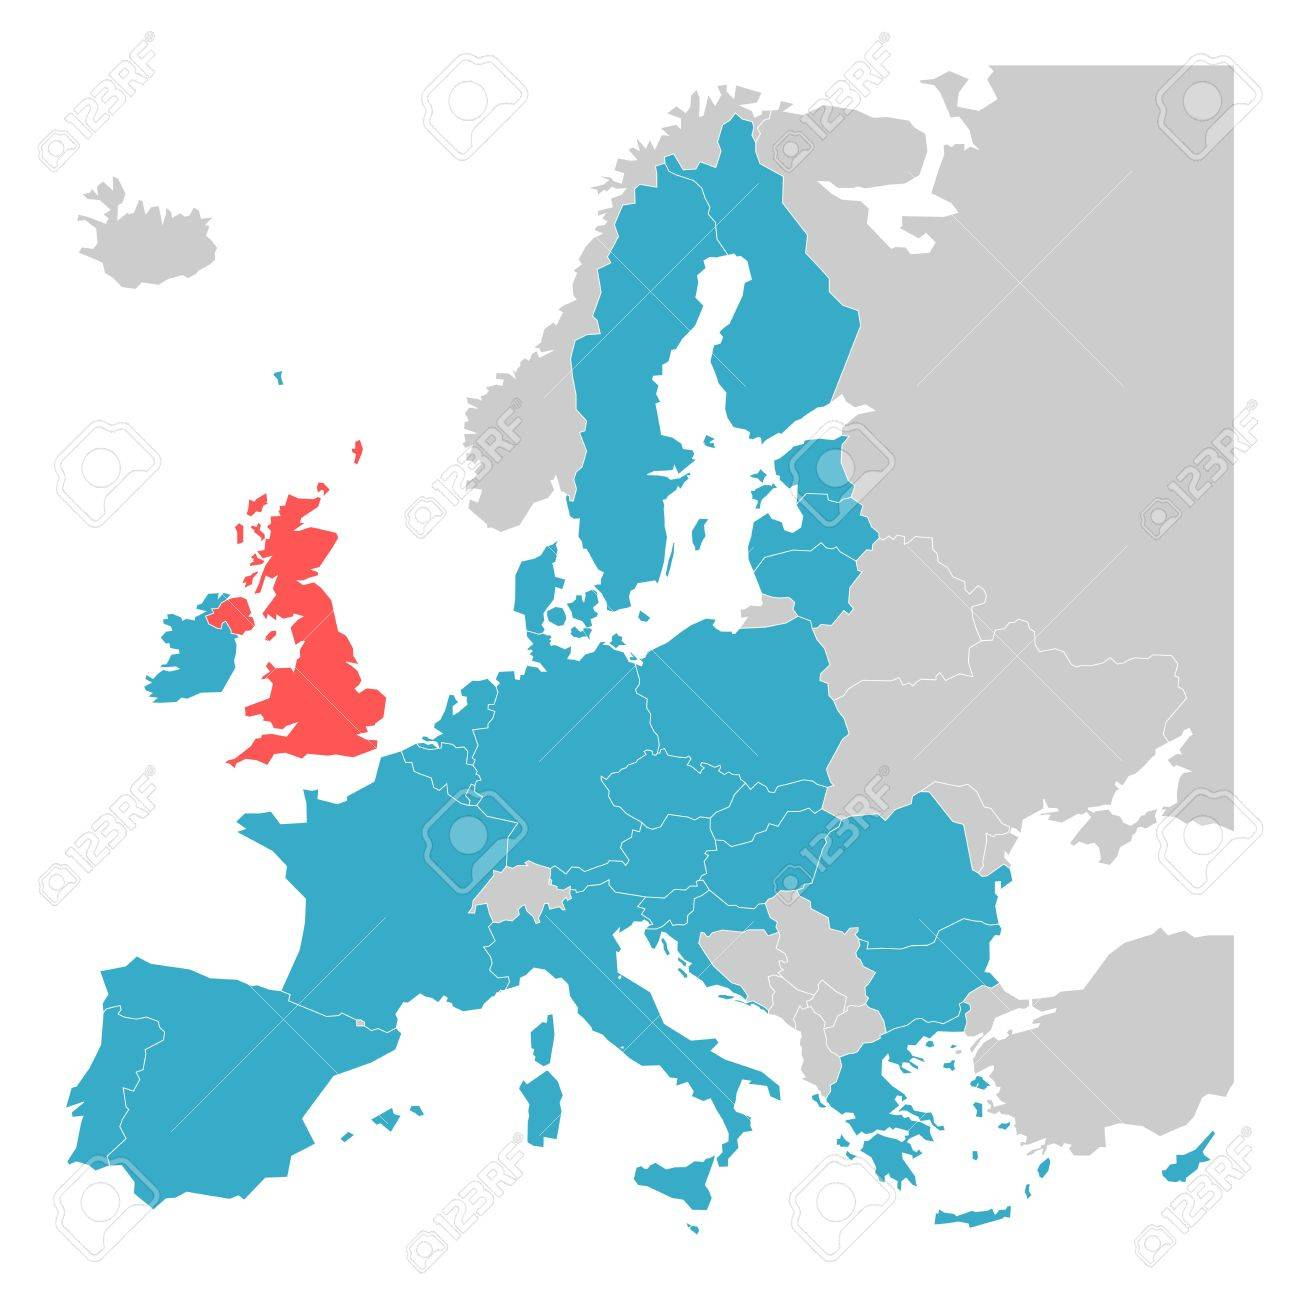 Brexit Theme Map Map Of Europe With Highlighted EU Member States - United kingdom europe map